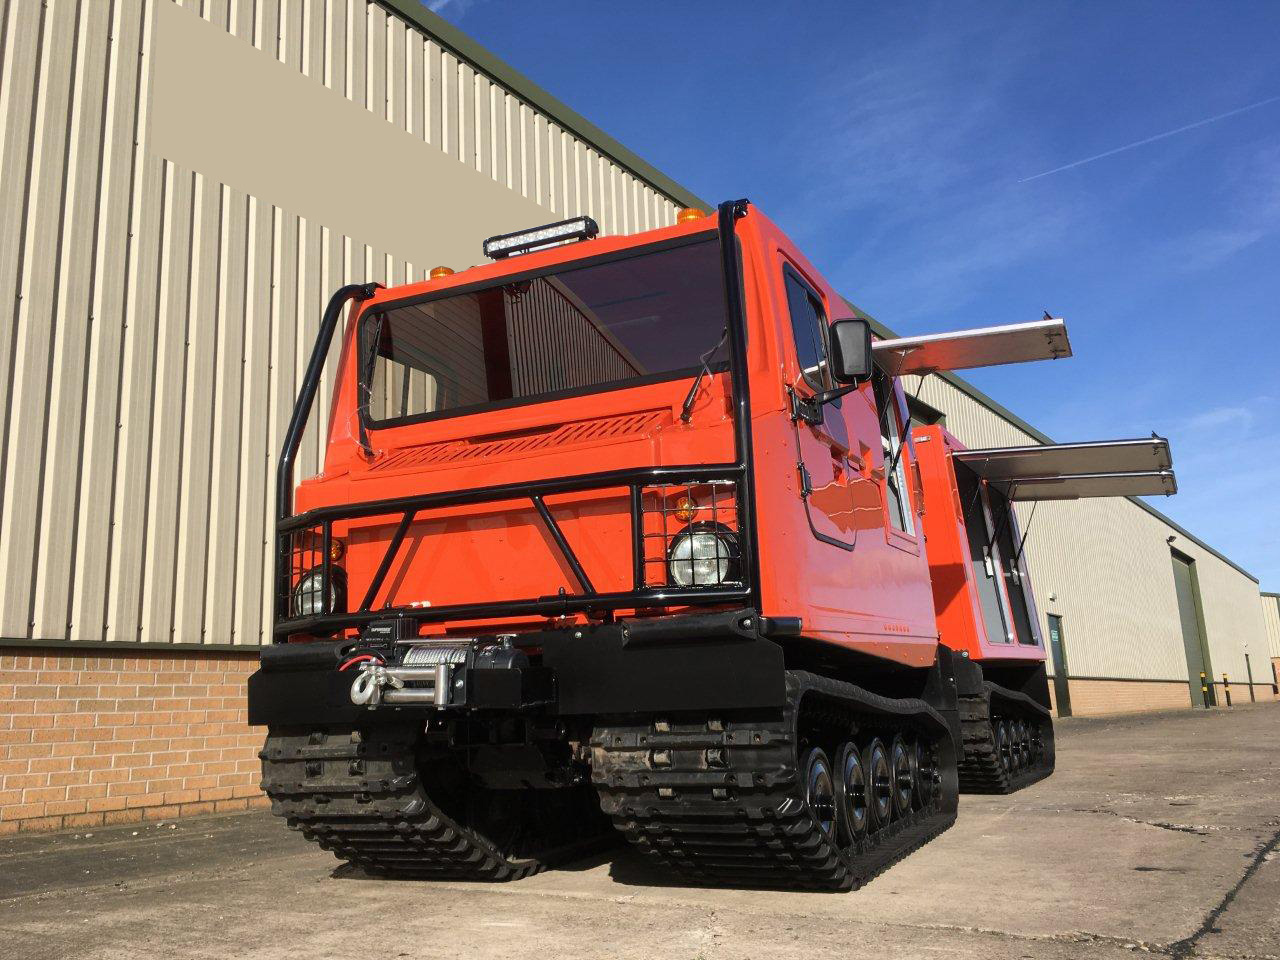 military vehicles for sale - <a href='/index.php/hagglund-bv206/models-available/50253-hagglund-bv206-multi-purpose-vehicle' title='Read more...' class='joodb_titletink'>Hagglund BV206 Multi-Purpose Vehicle</a>